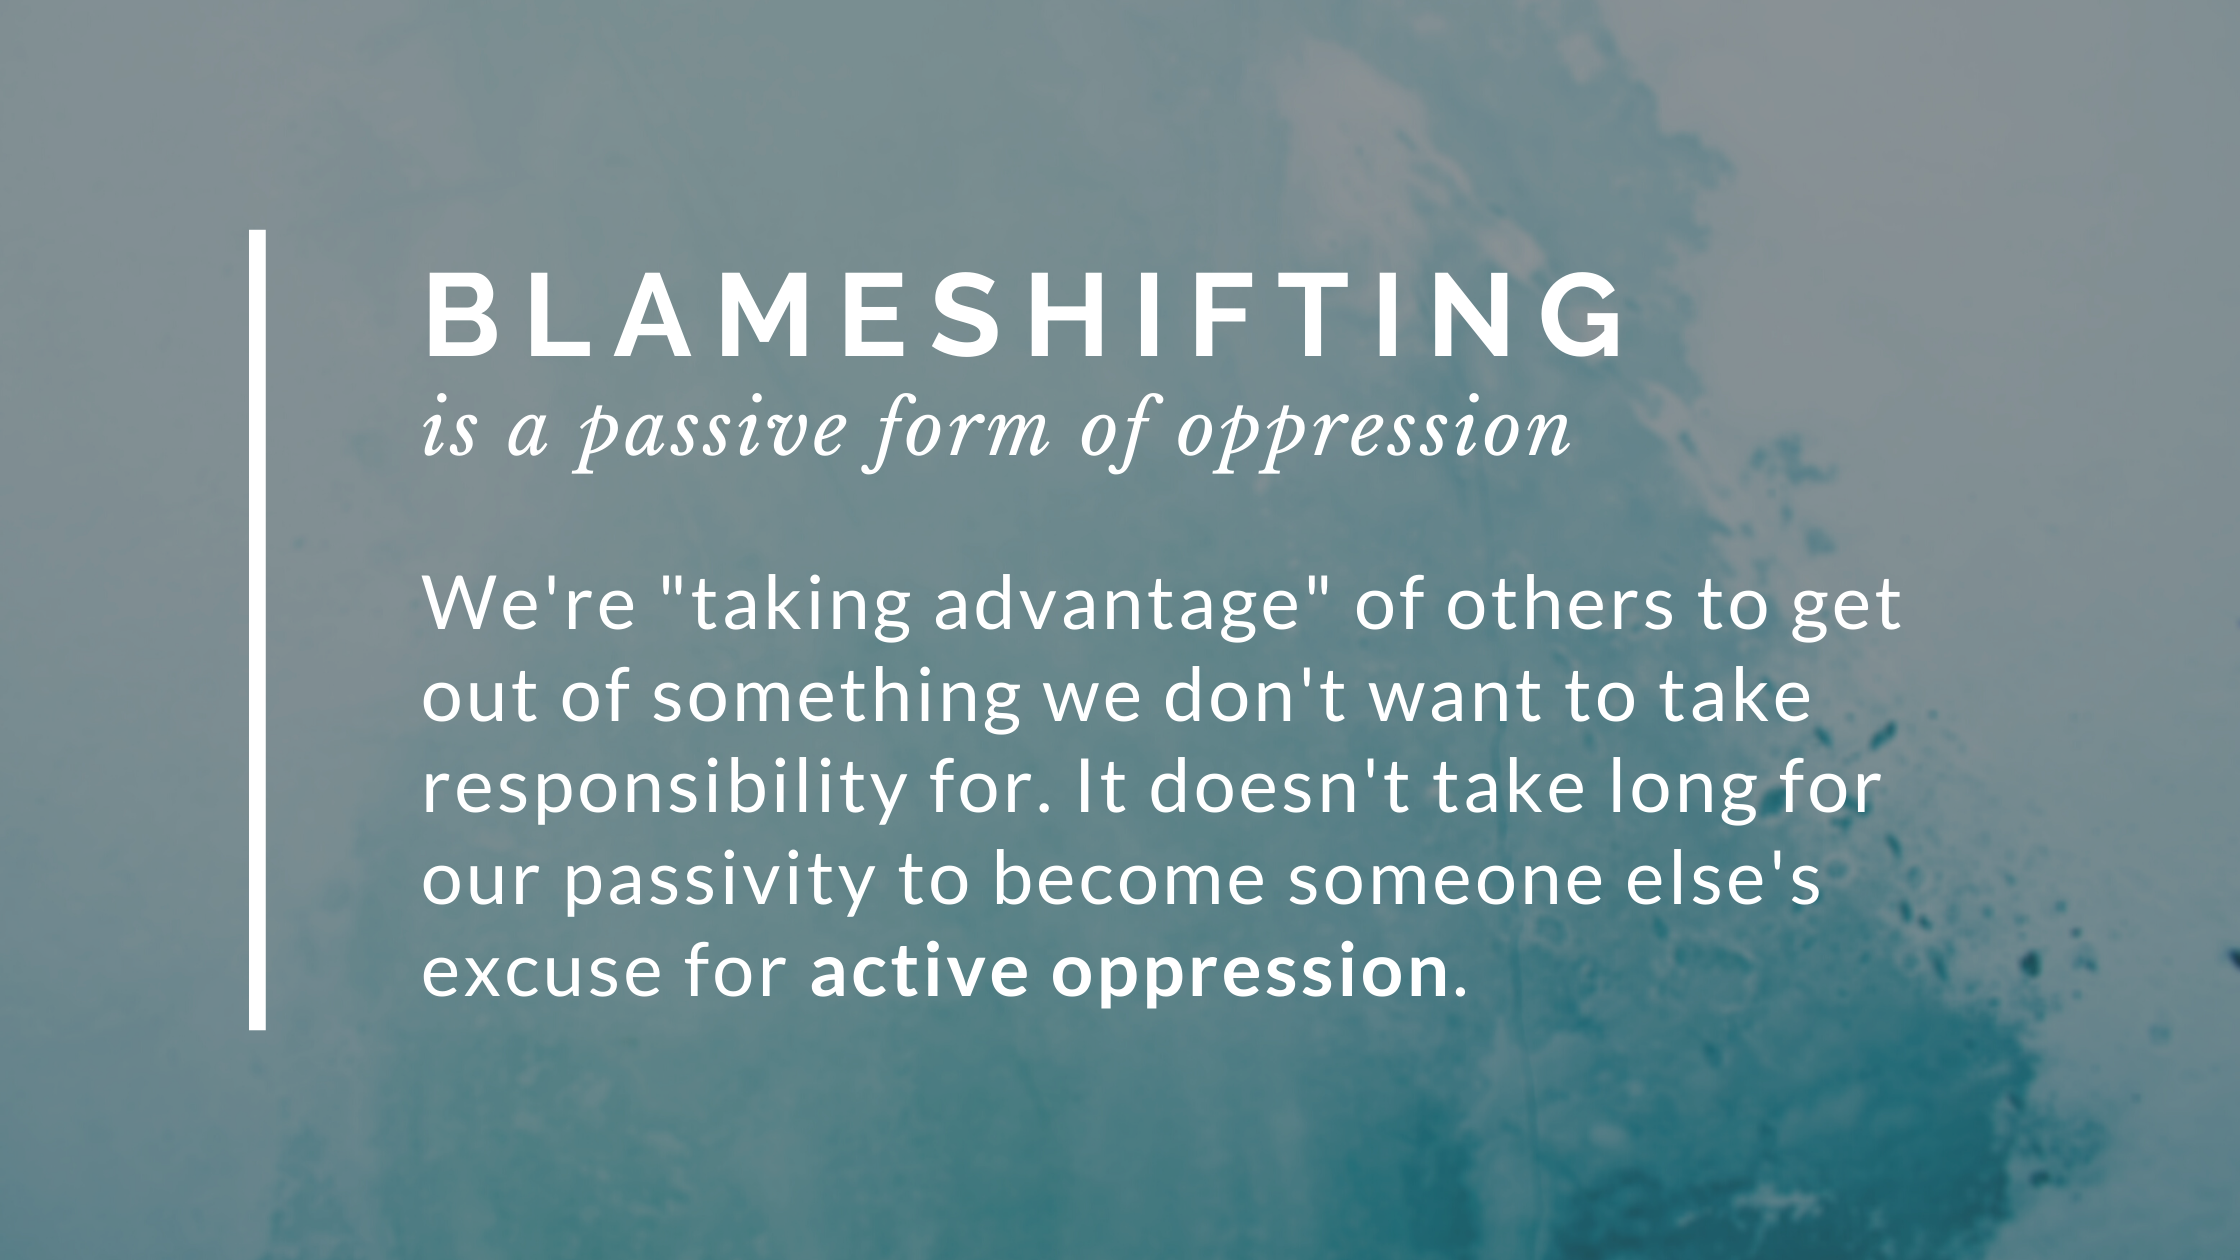 blameshifting is a passive form of oppression quote